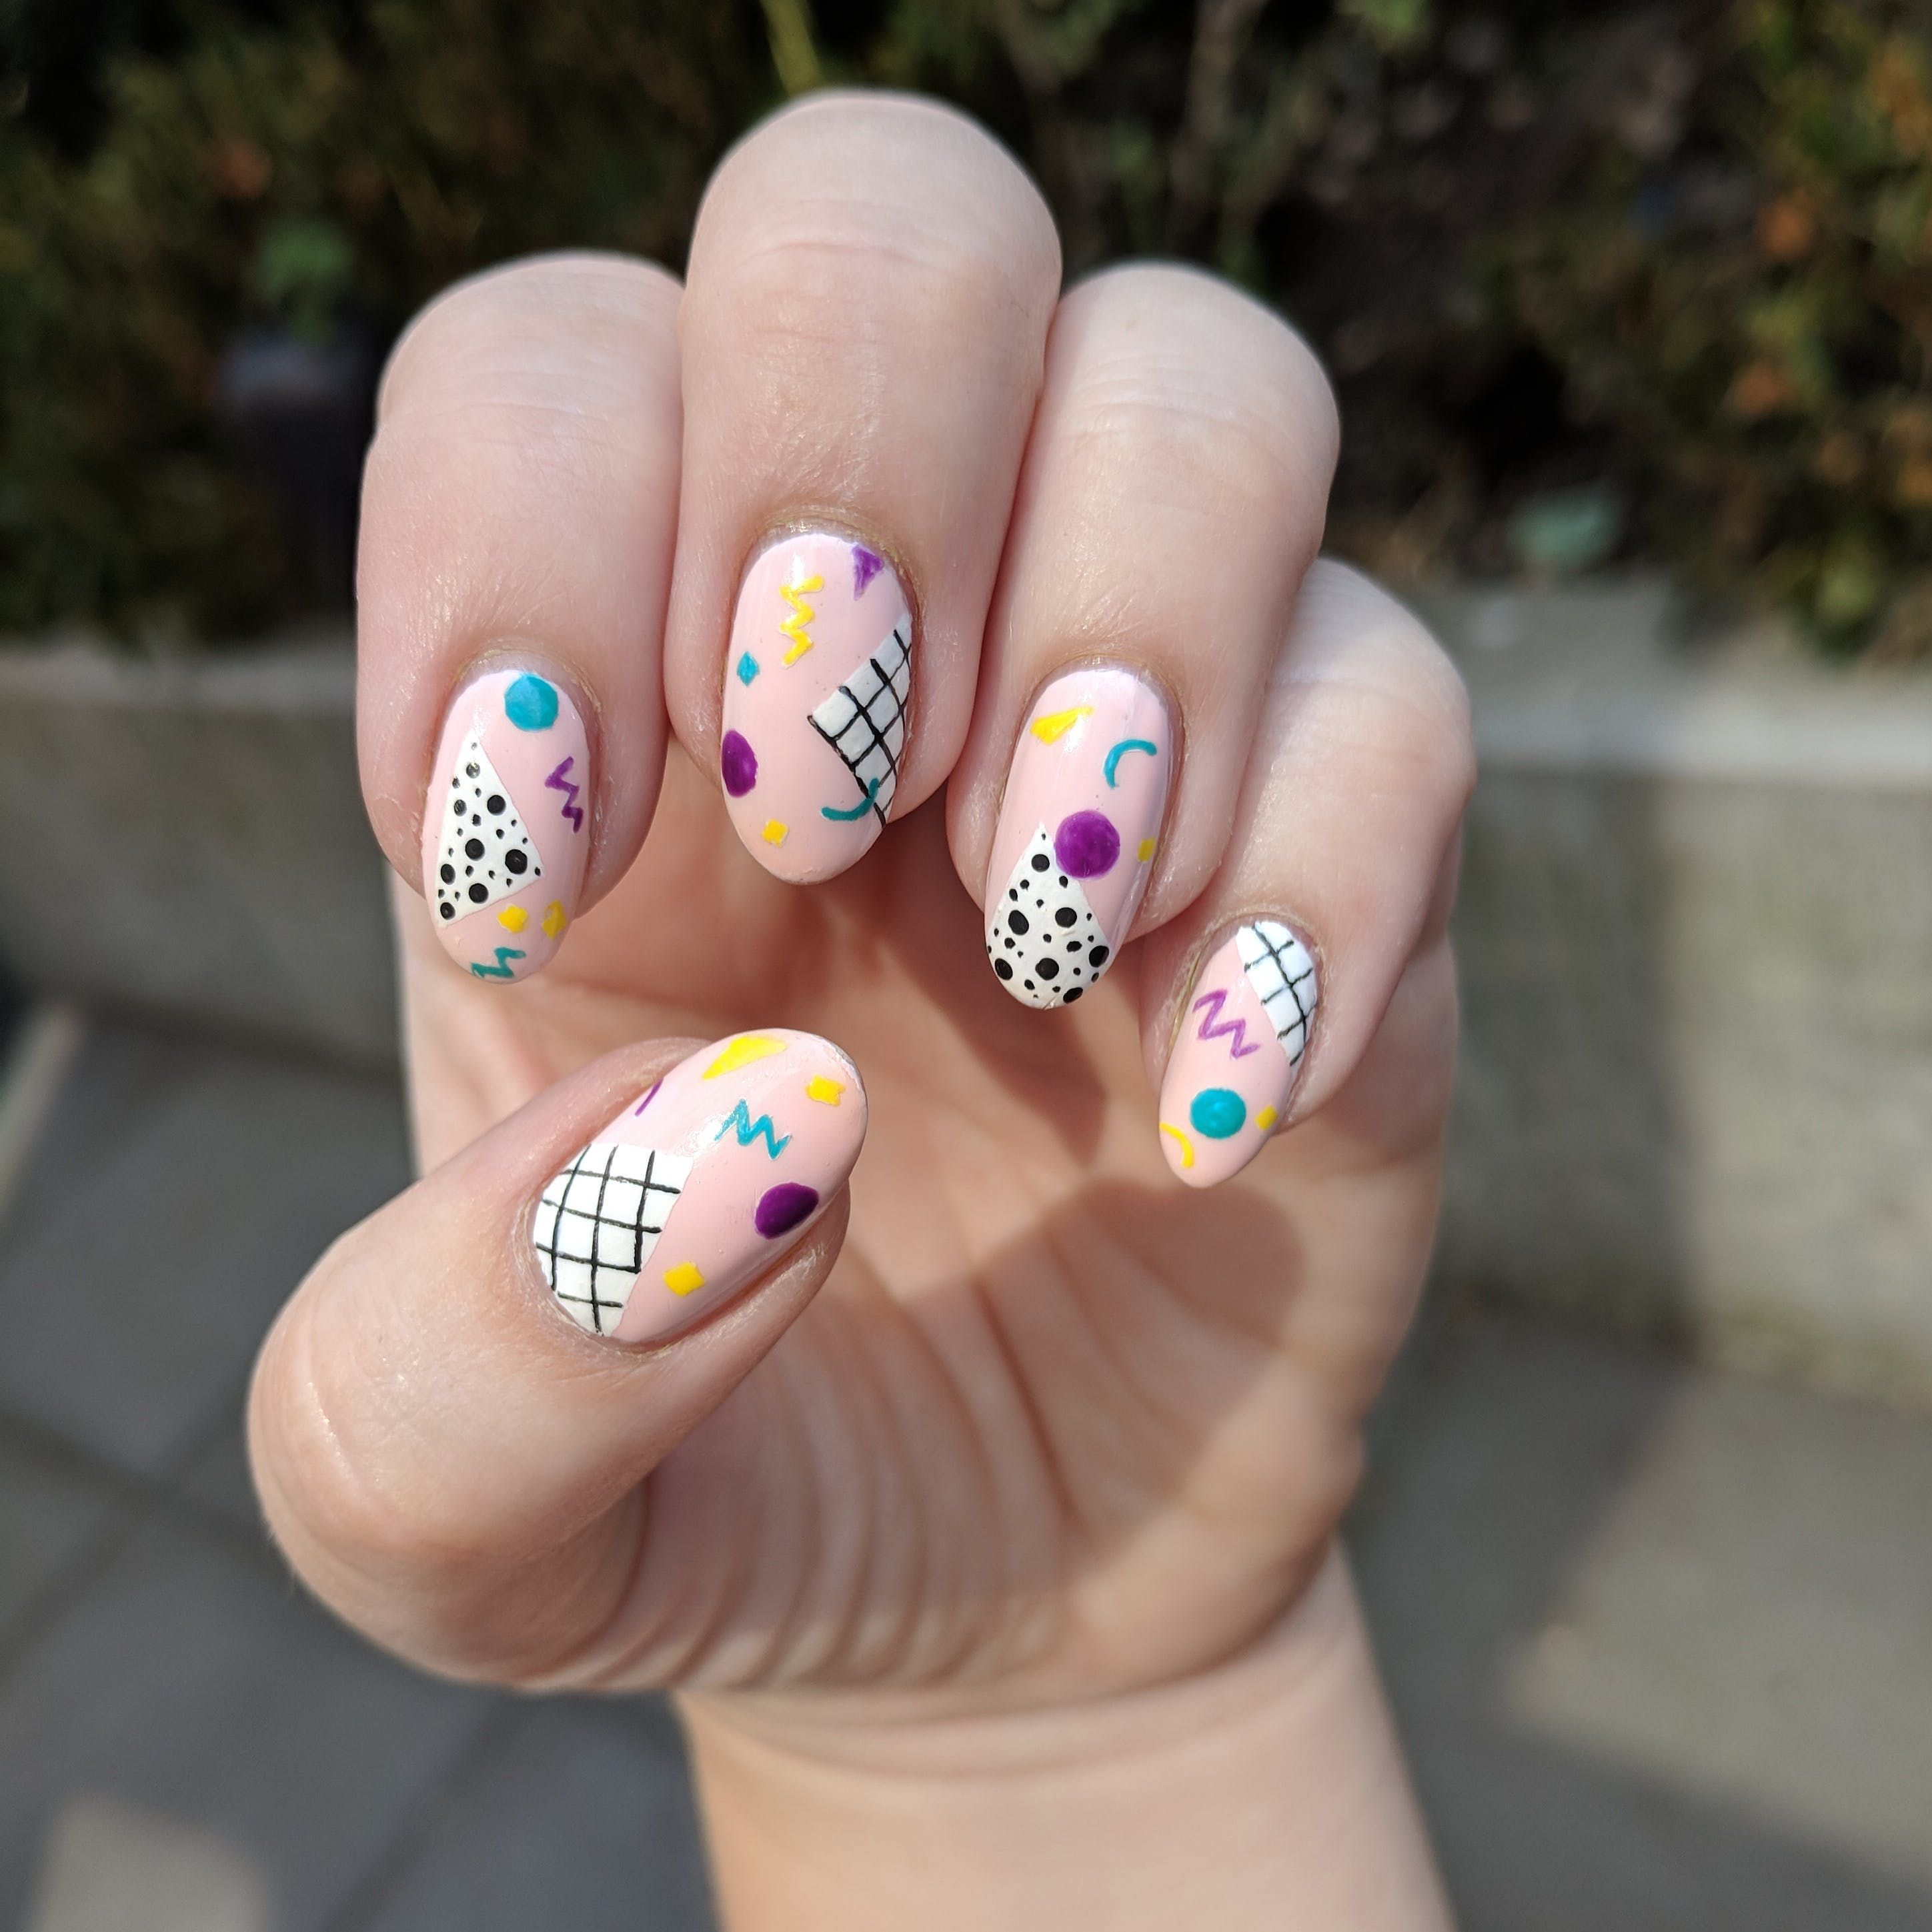 12 80s Nail Art Ideas To Round Out Your End Of Summer Style Nail Art Summer 80s Nails Floral Nails